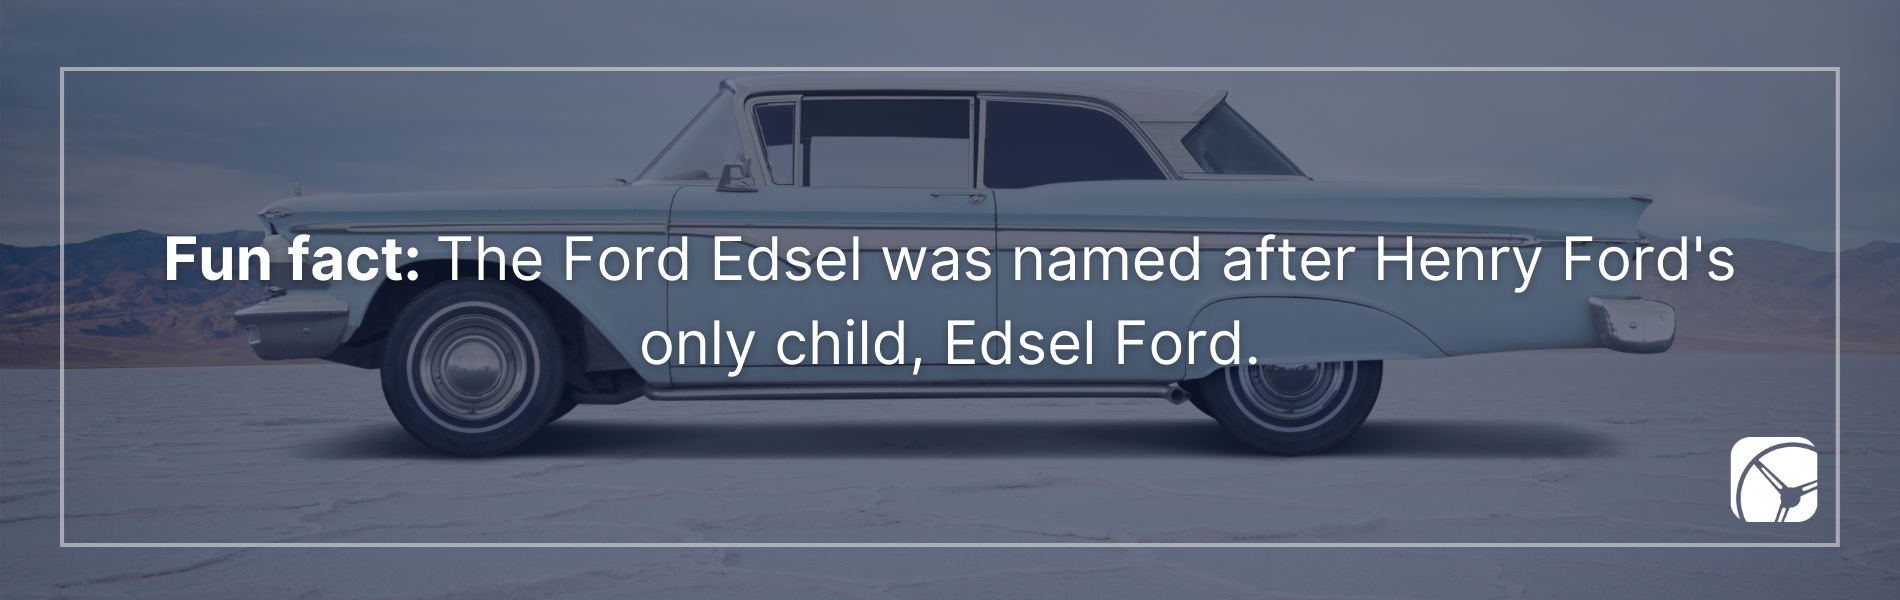 💡💡 Fun fact: The story of the Ford Edsel is one of Bill Gates's favorite case studies.